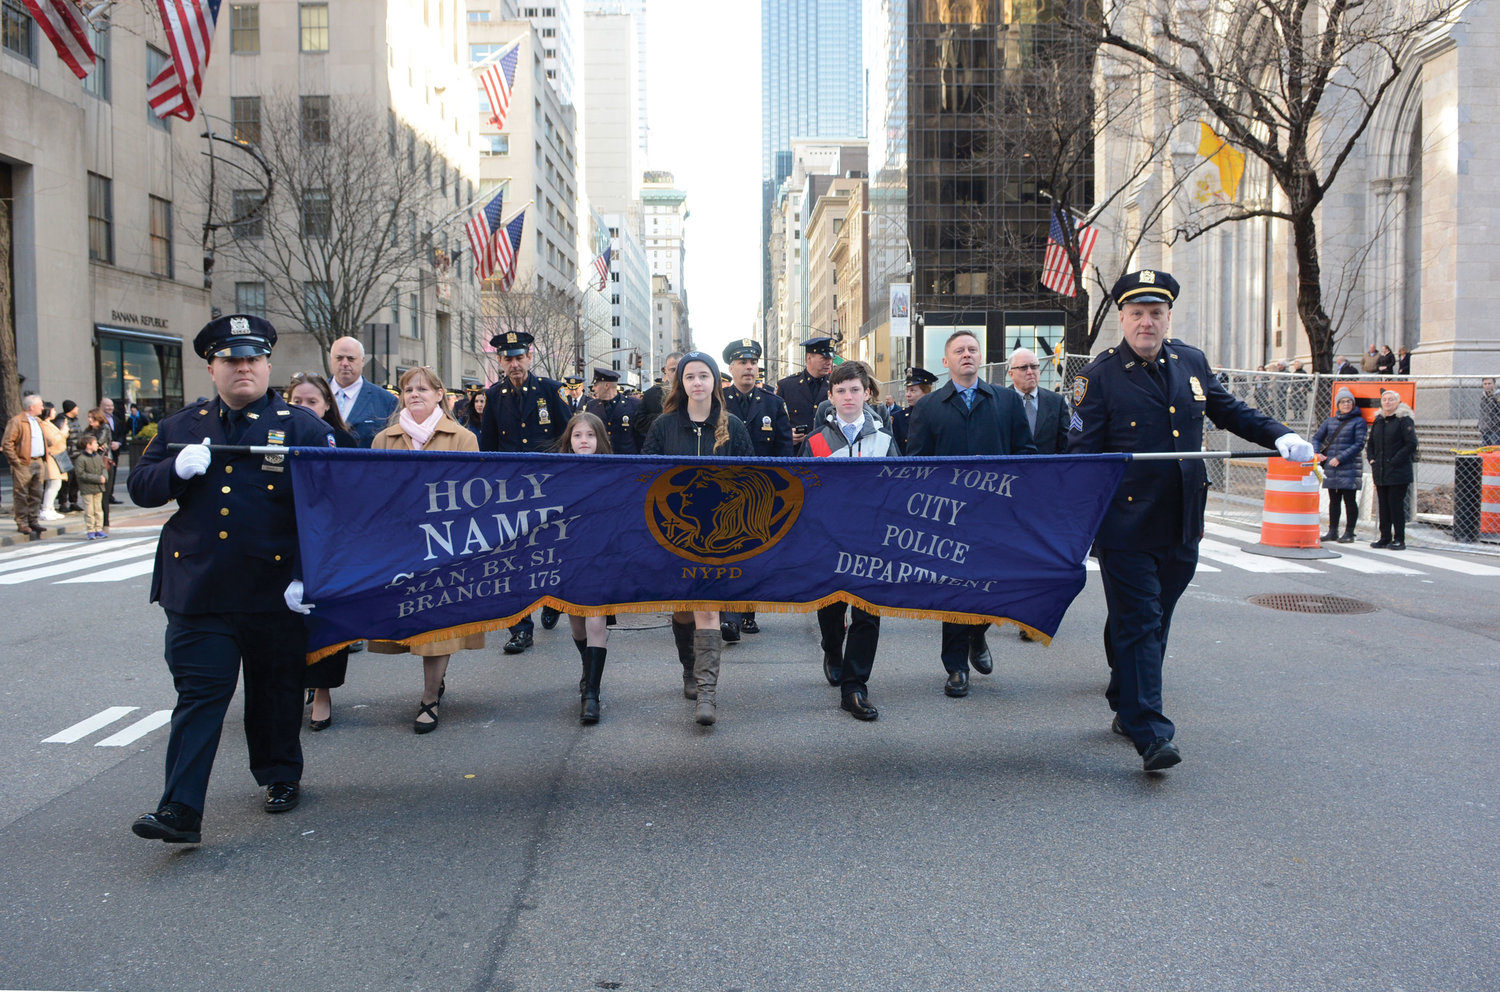 Members of the NYPD Holy Name Society march to the breakfast at the New York Hilton Hotel on 53rd Street and Avenue of the Americas.